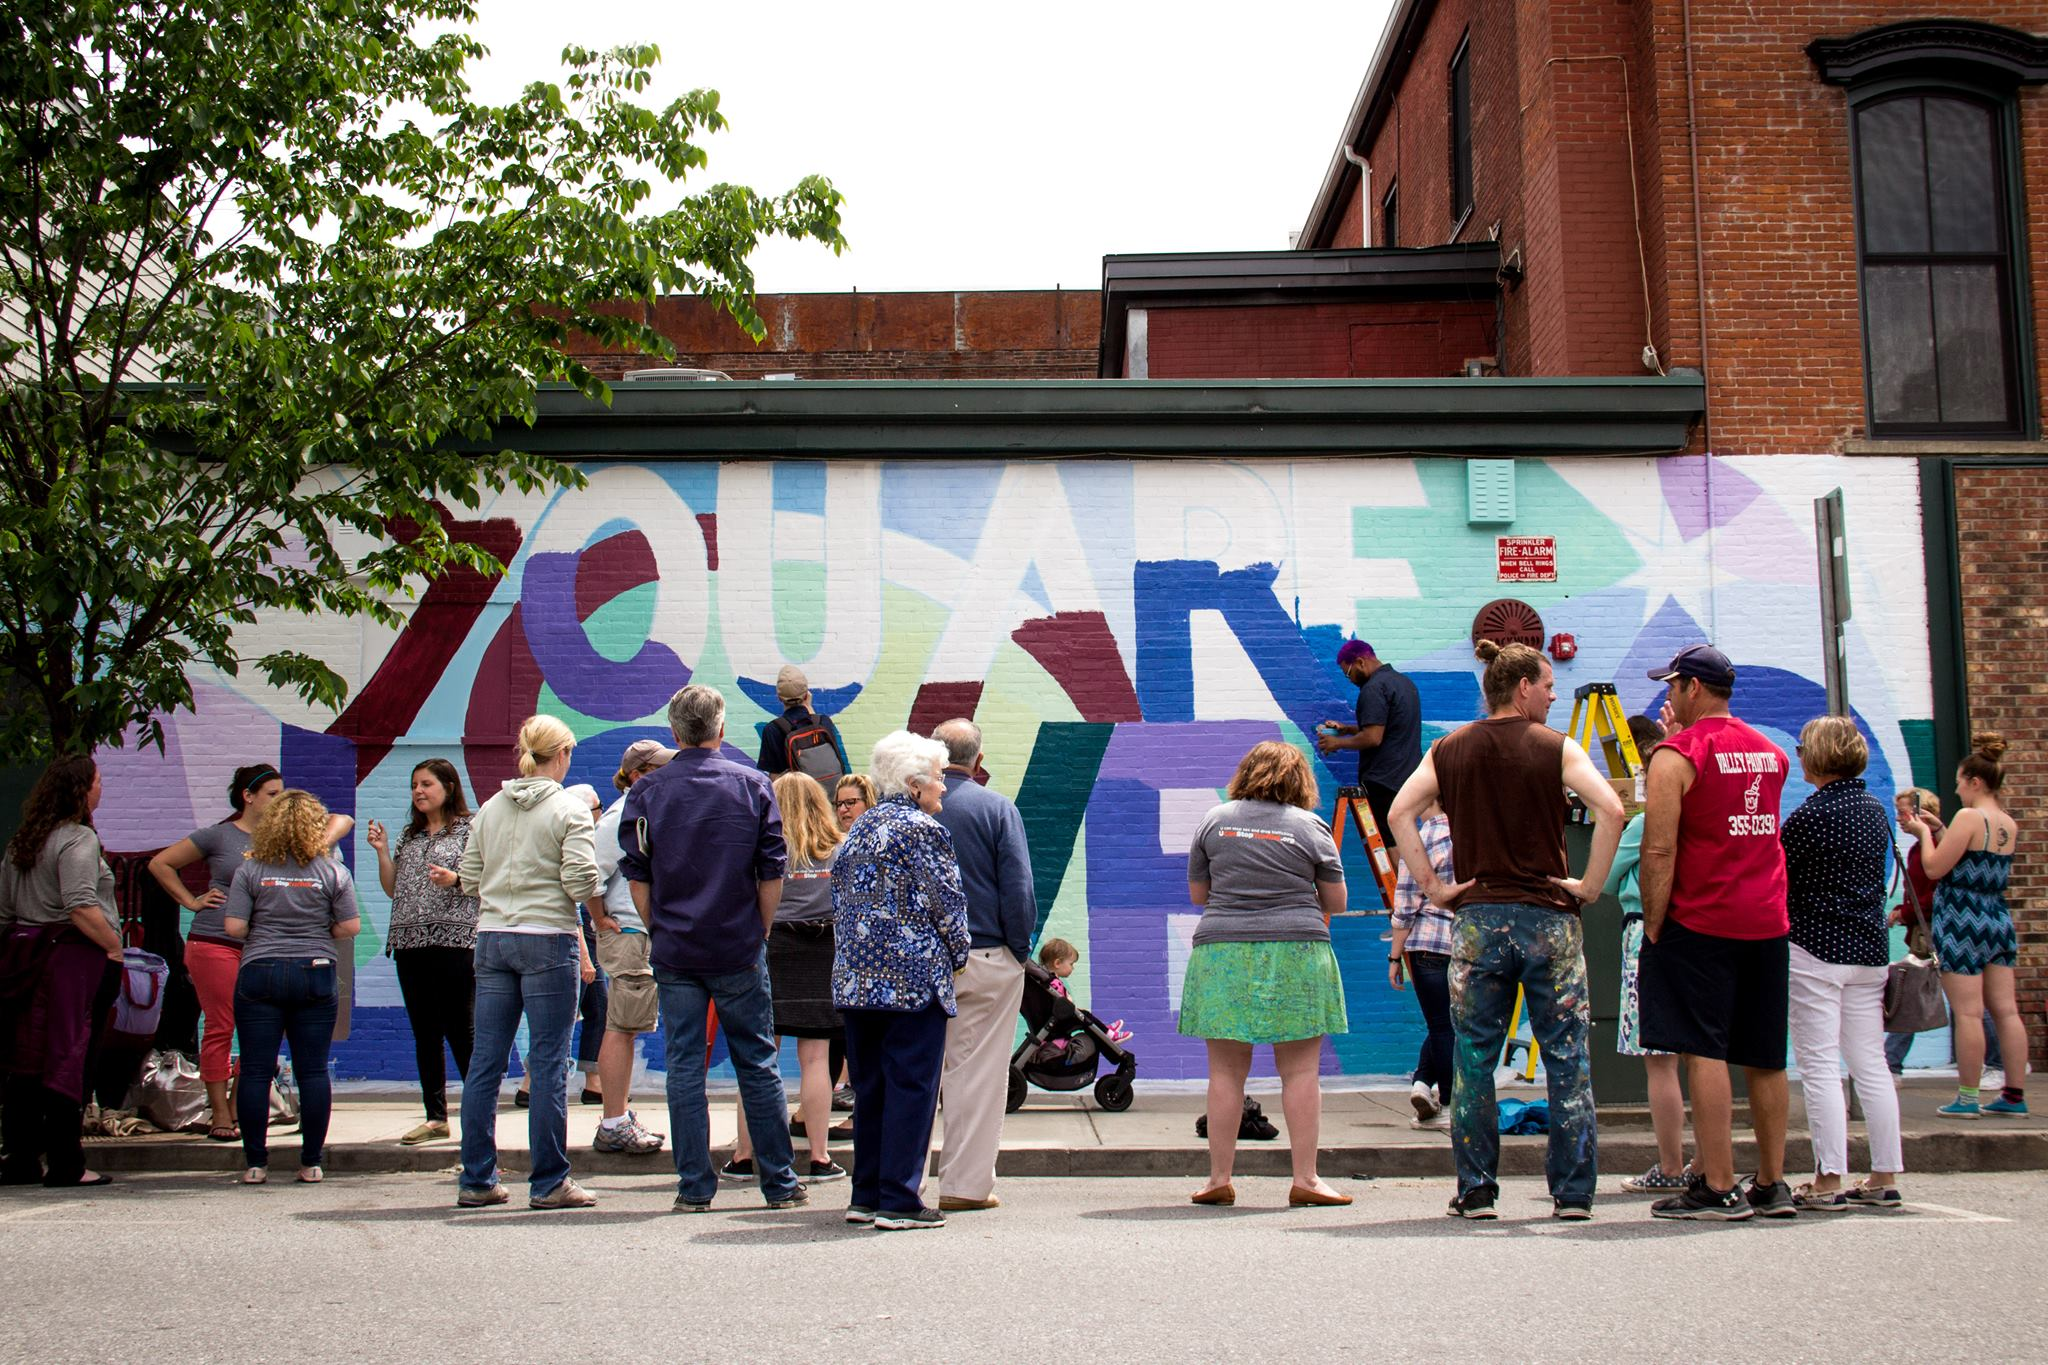 Community members gather to paint in support of victims of human trafficking, Burlington, VT